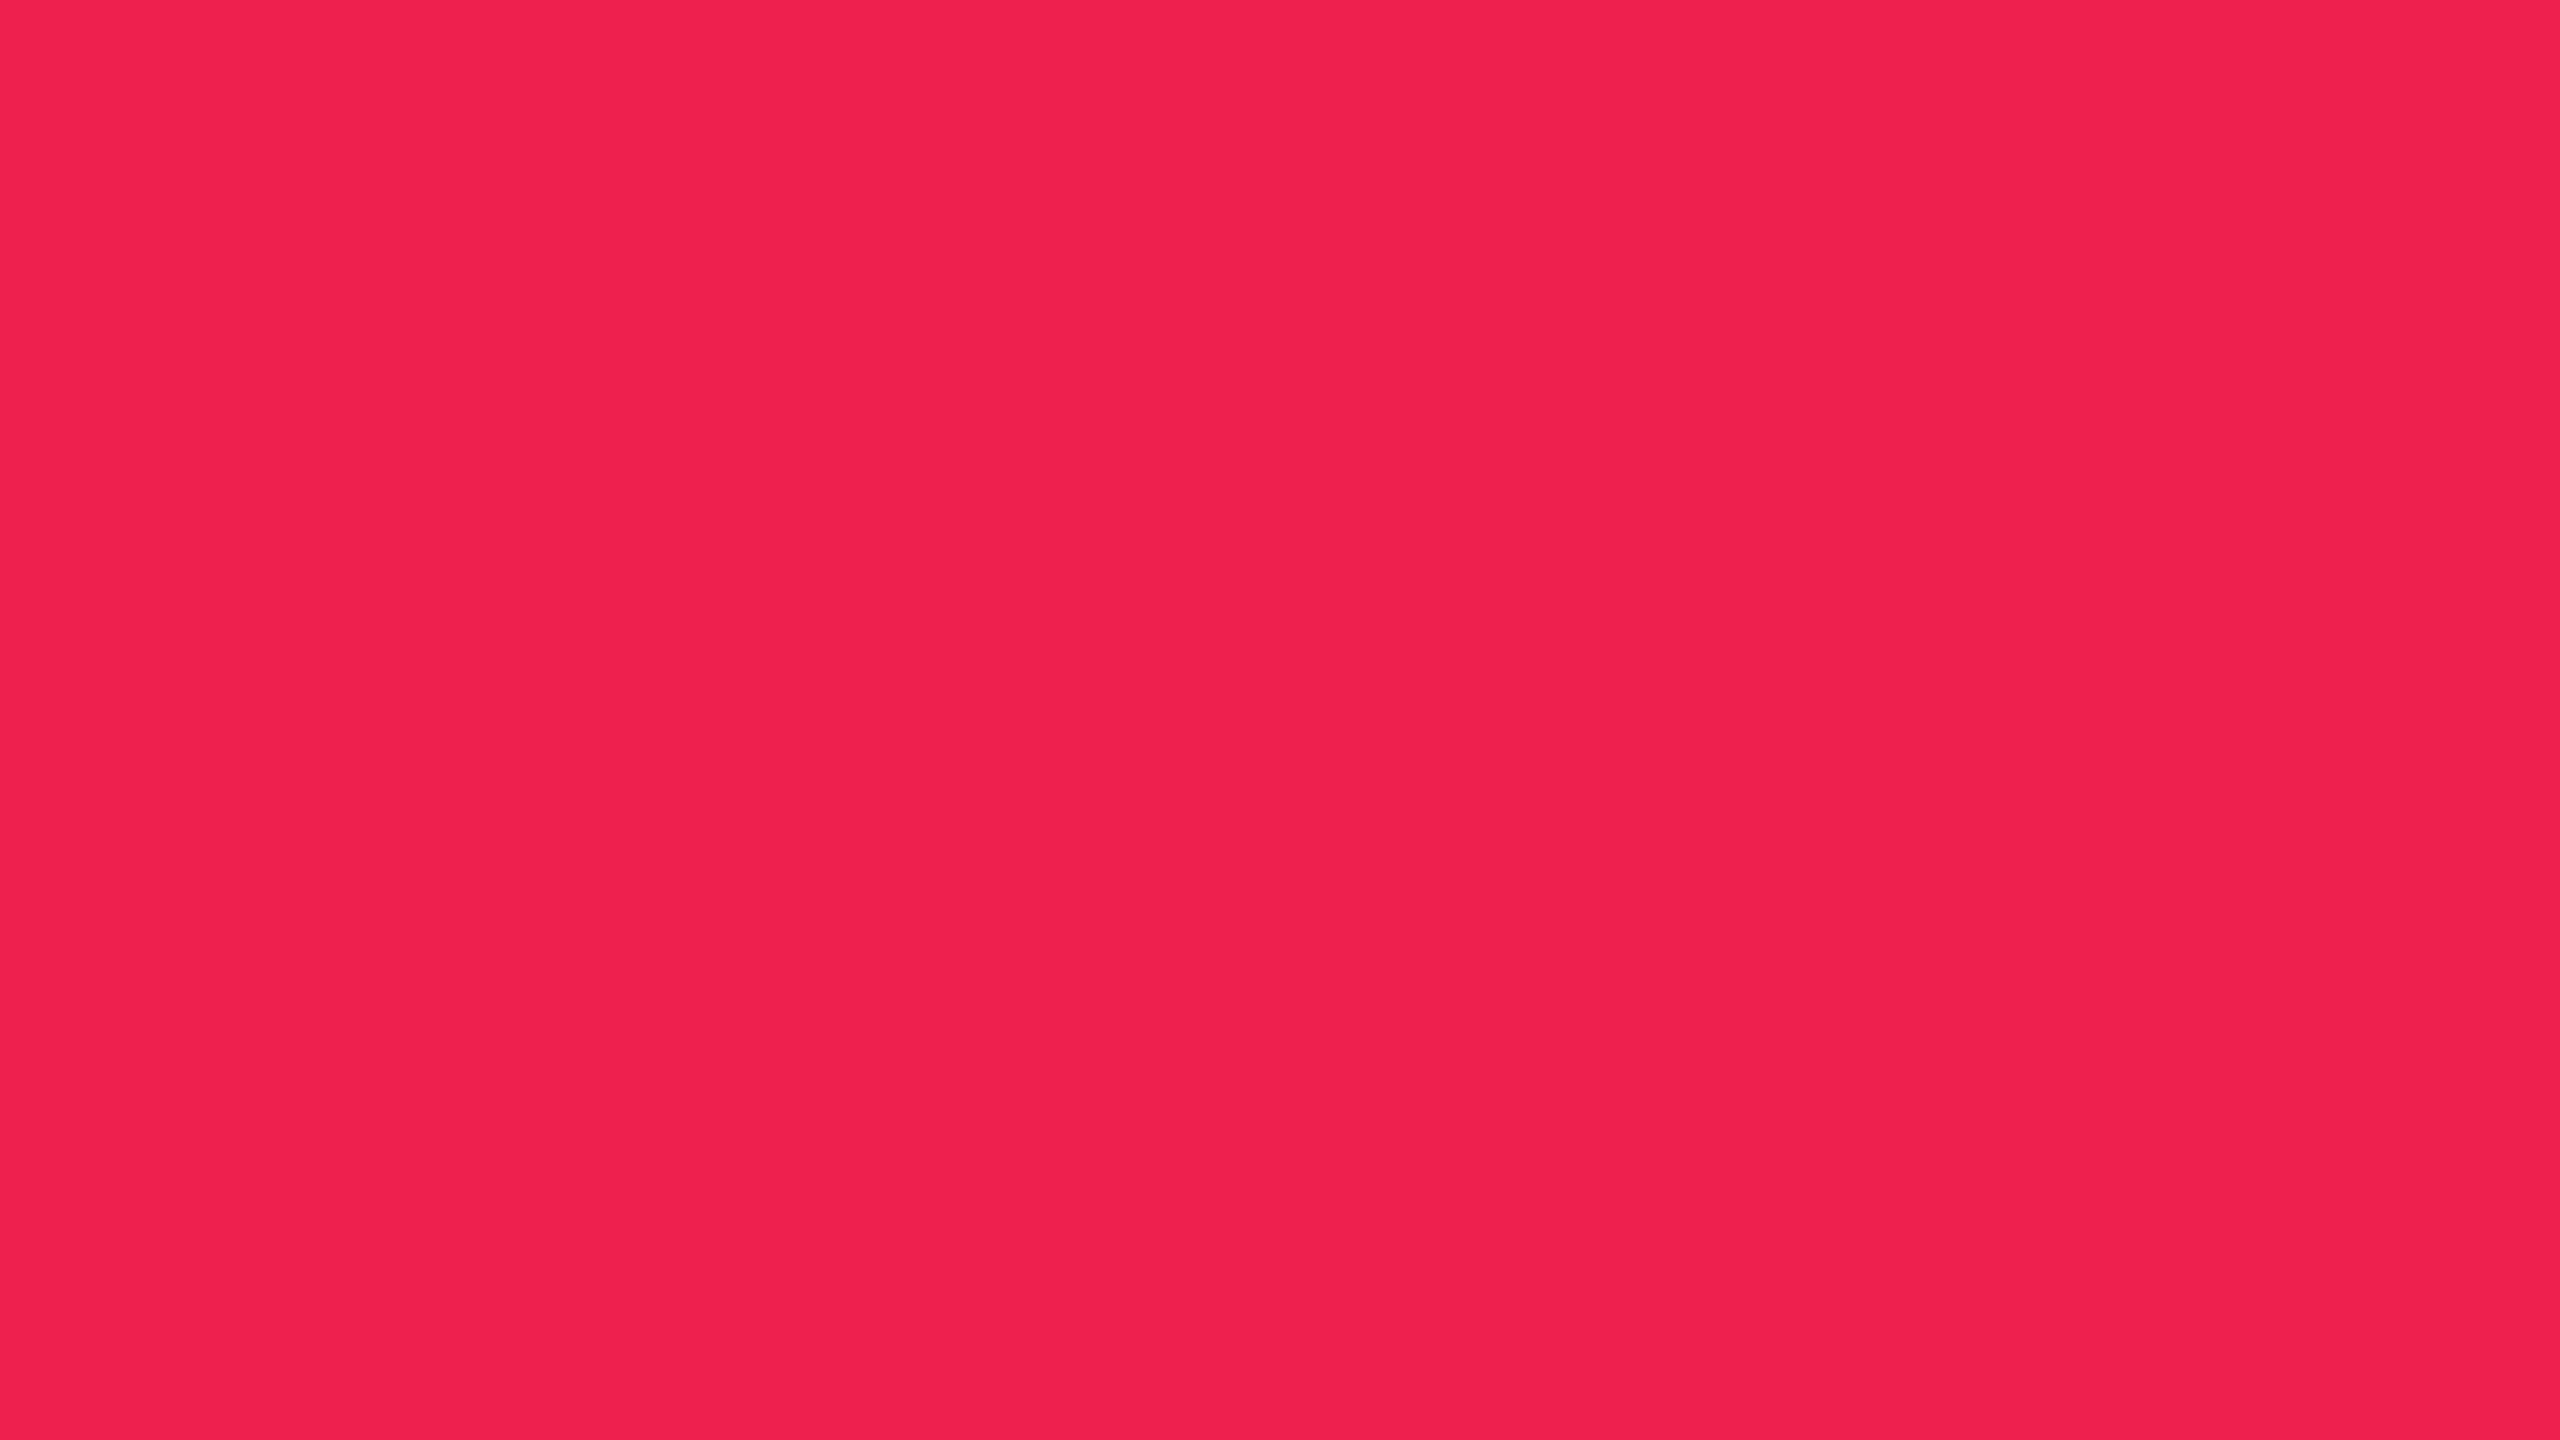 2560x1440 Red Crayola Solid Color Background